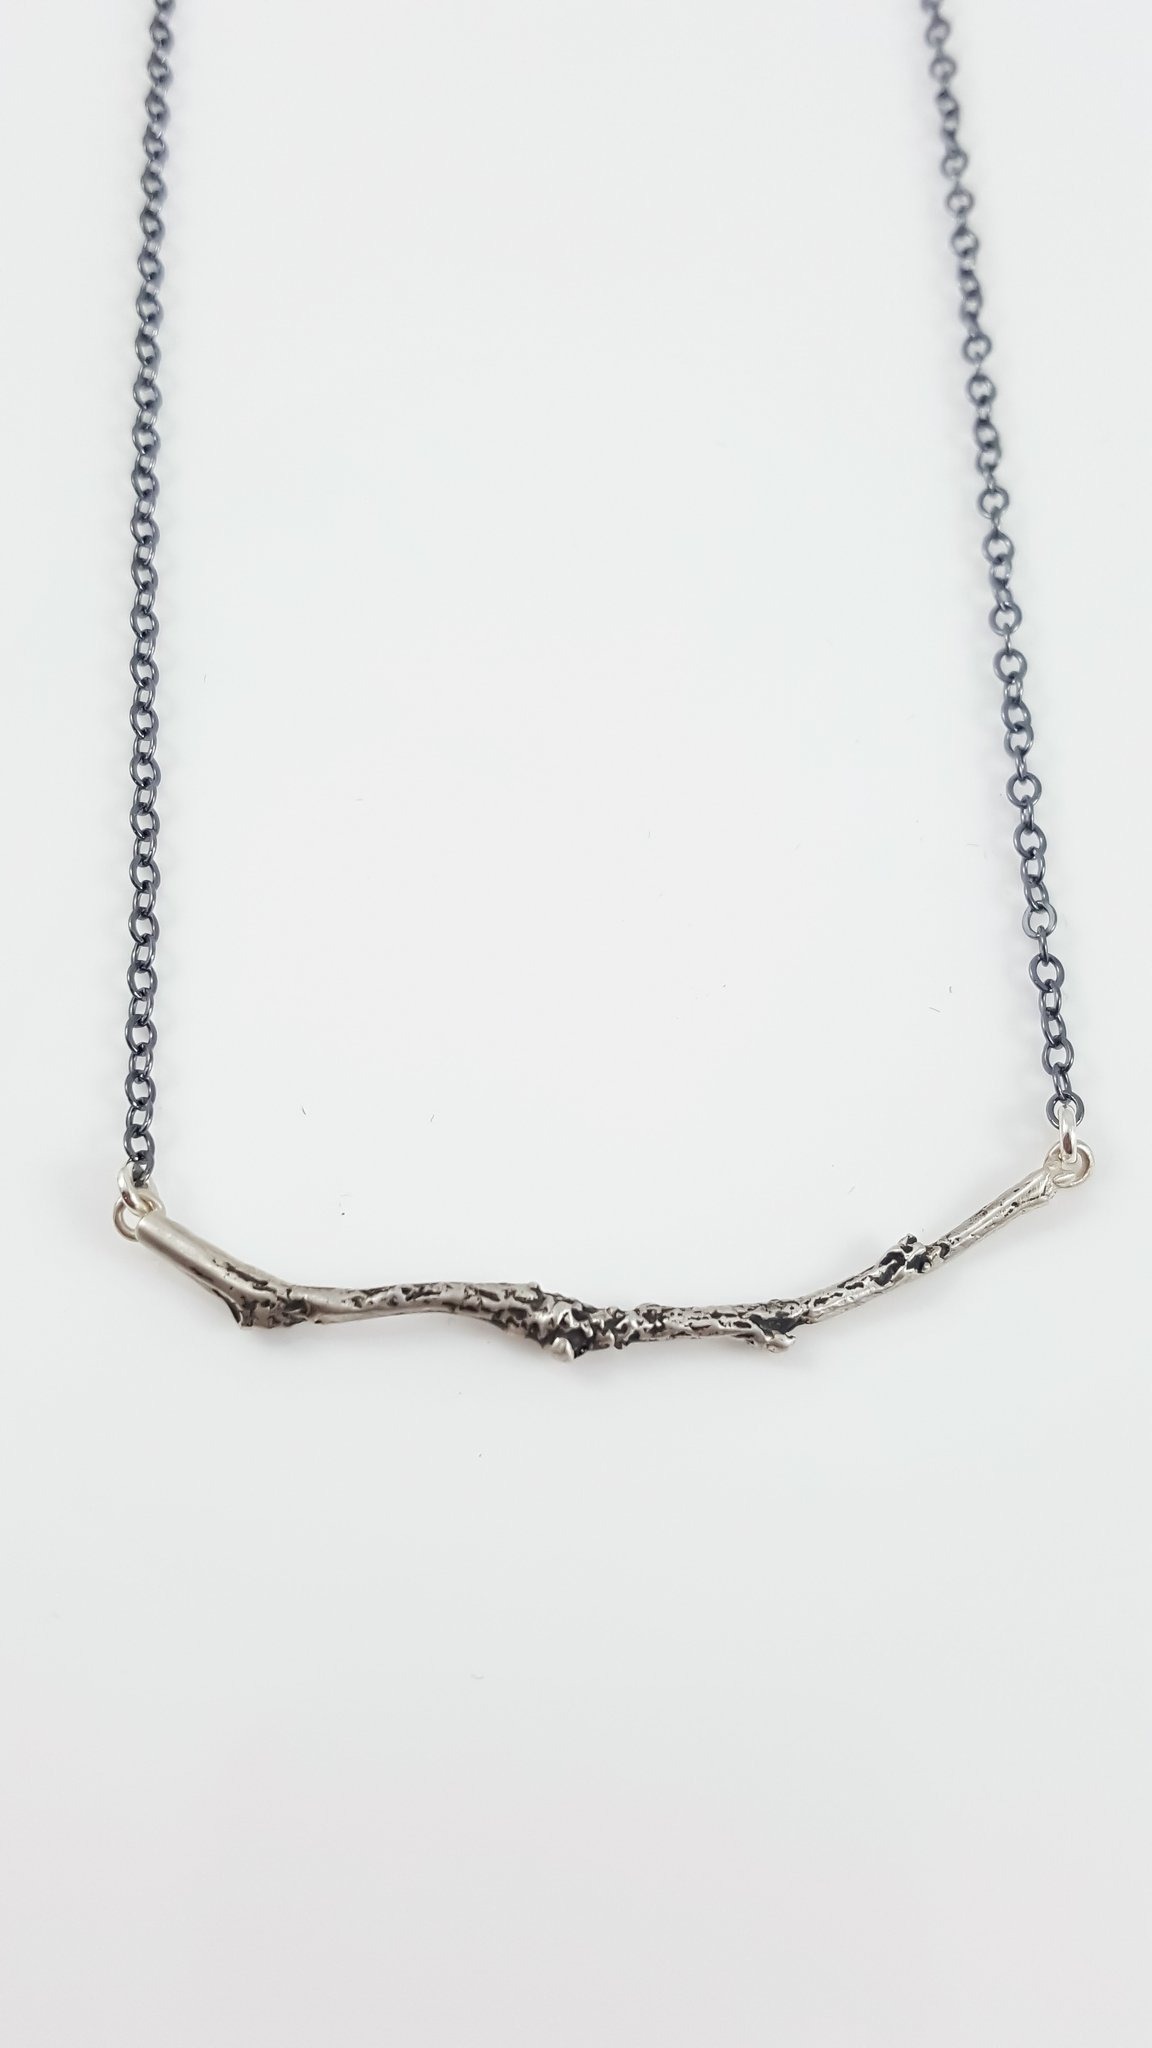 Branch Bar Necklace SS Oxidized Chain3 1024x1024@2x